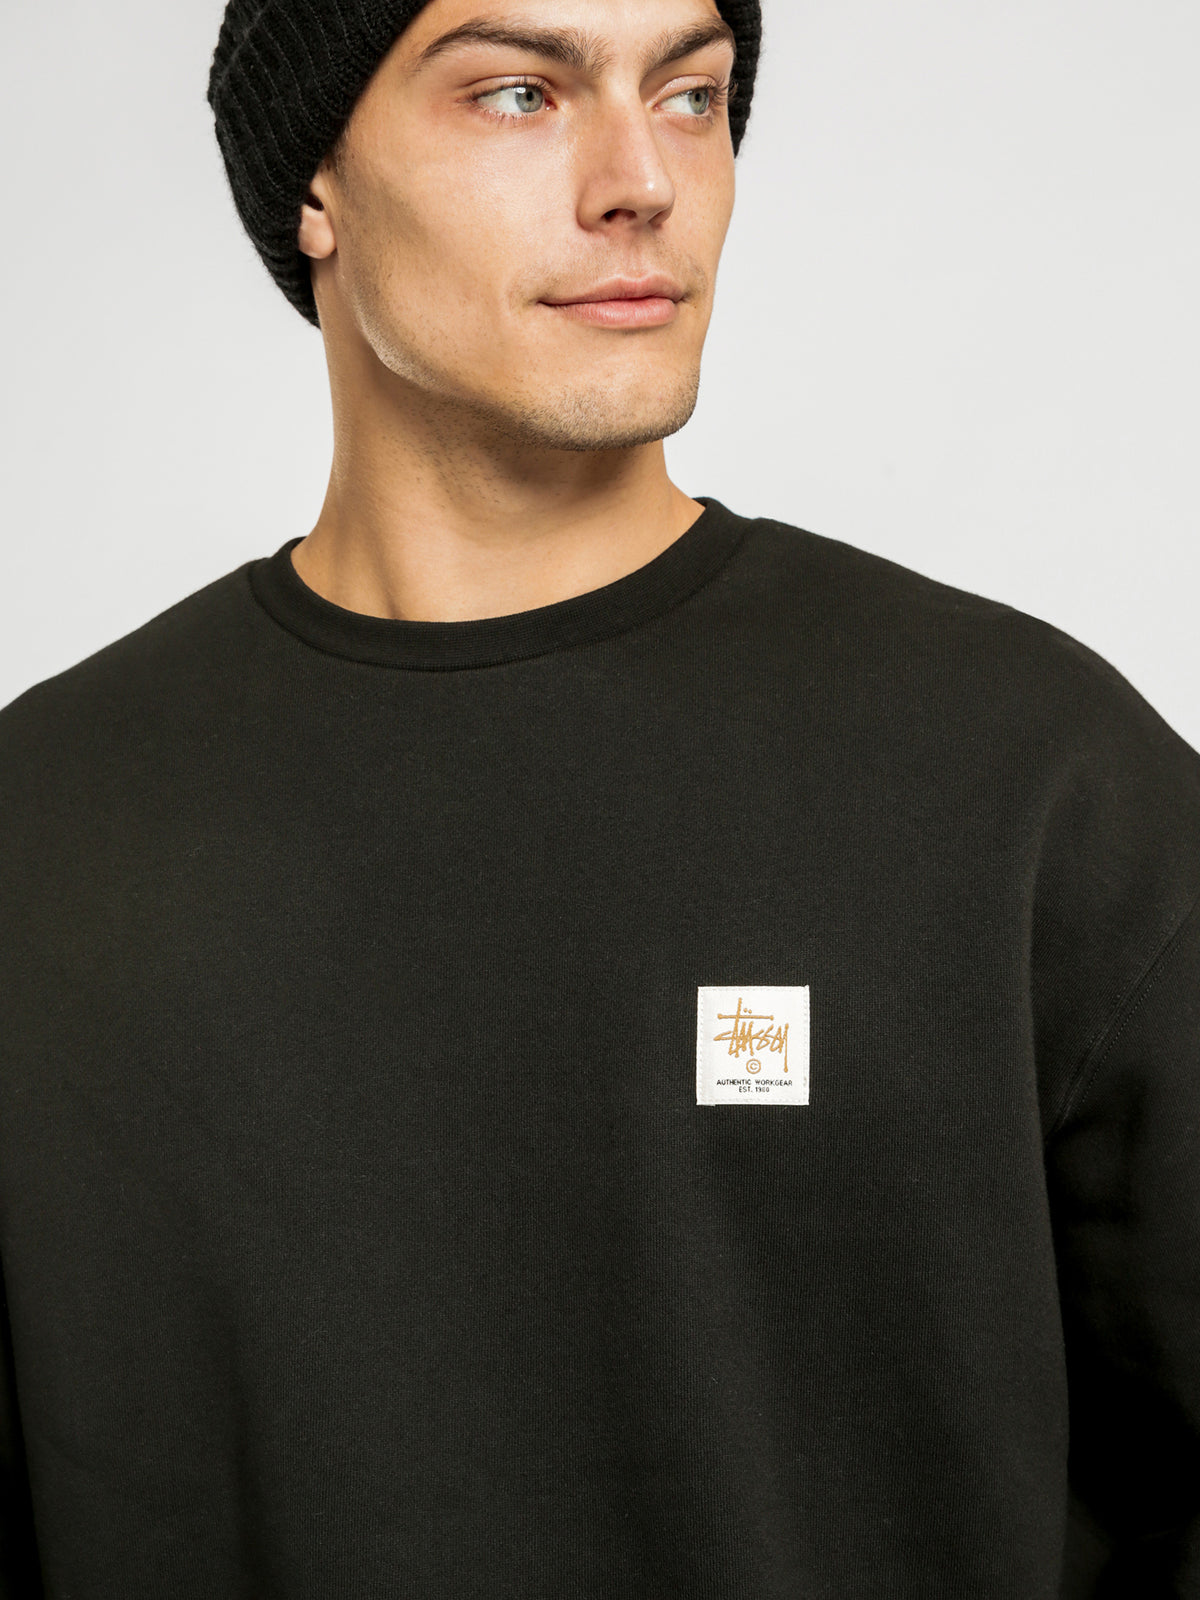 Authentic Workwear Crew Sweater in Black